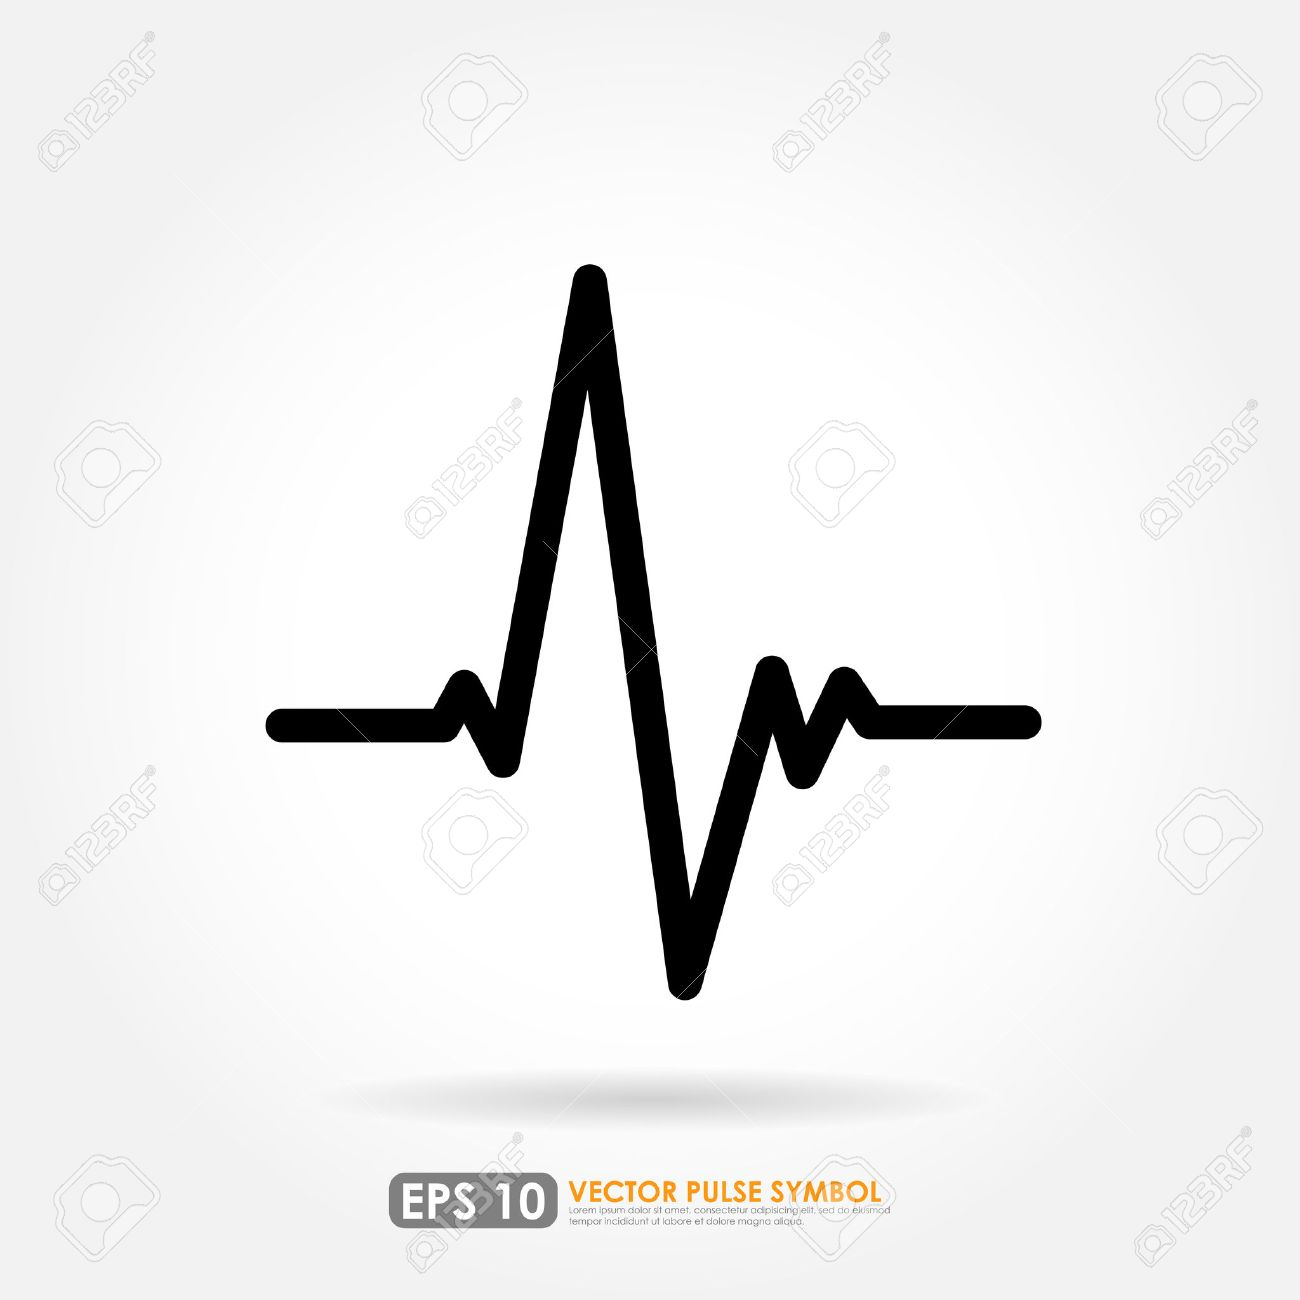 electrocardiogram ecg or ekg medical icon royalty free cliparts rh 123rf com ecg vectors vector analysis ecg